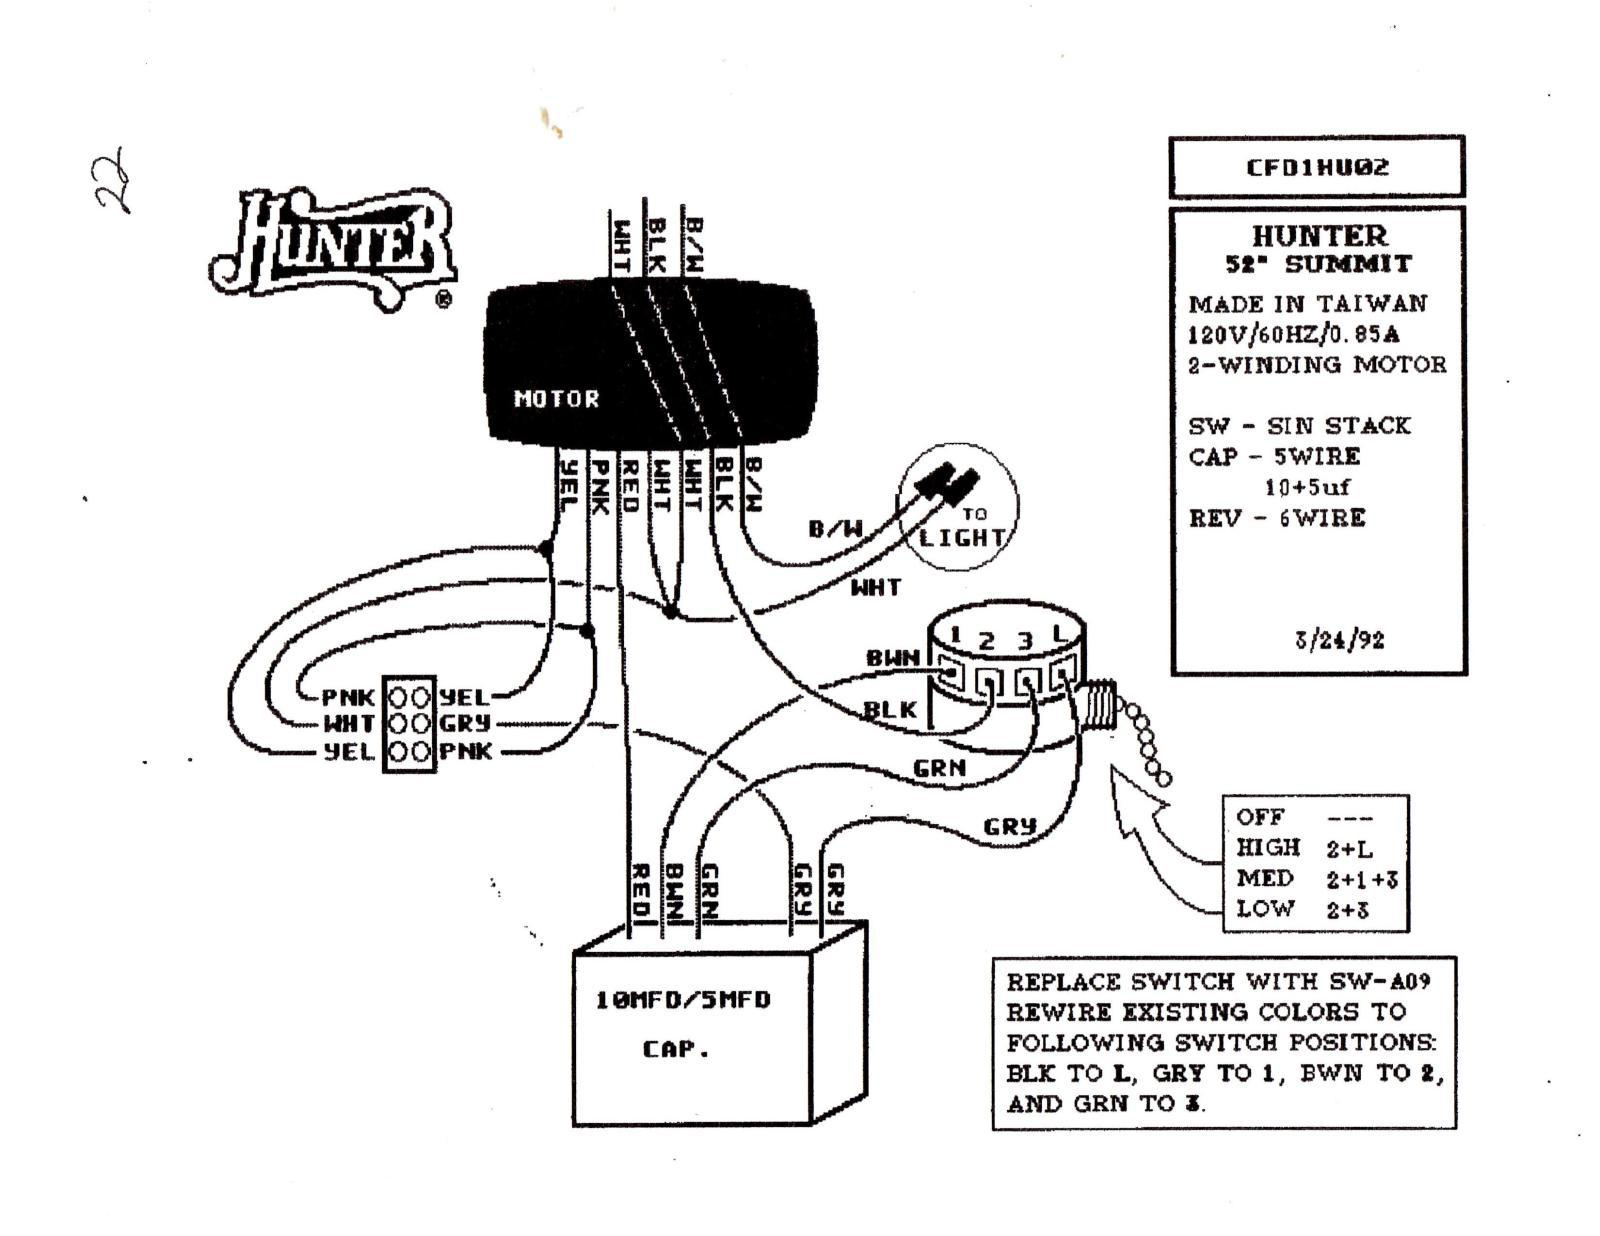 Hampton Bay Lighting Wiring Diagrams | Wiring Library - Hampton Bay Ceiling Fan Wiring Diagram